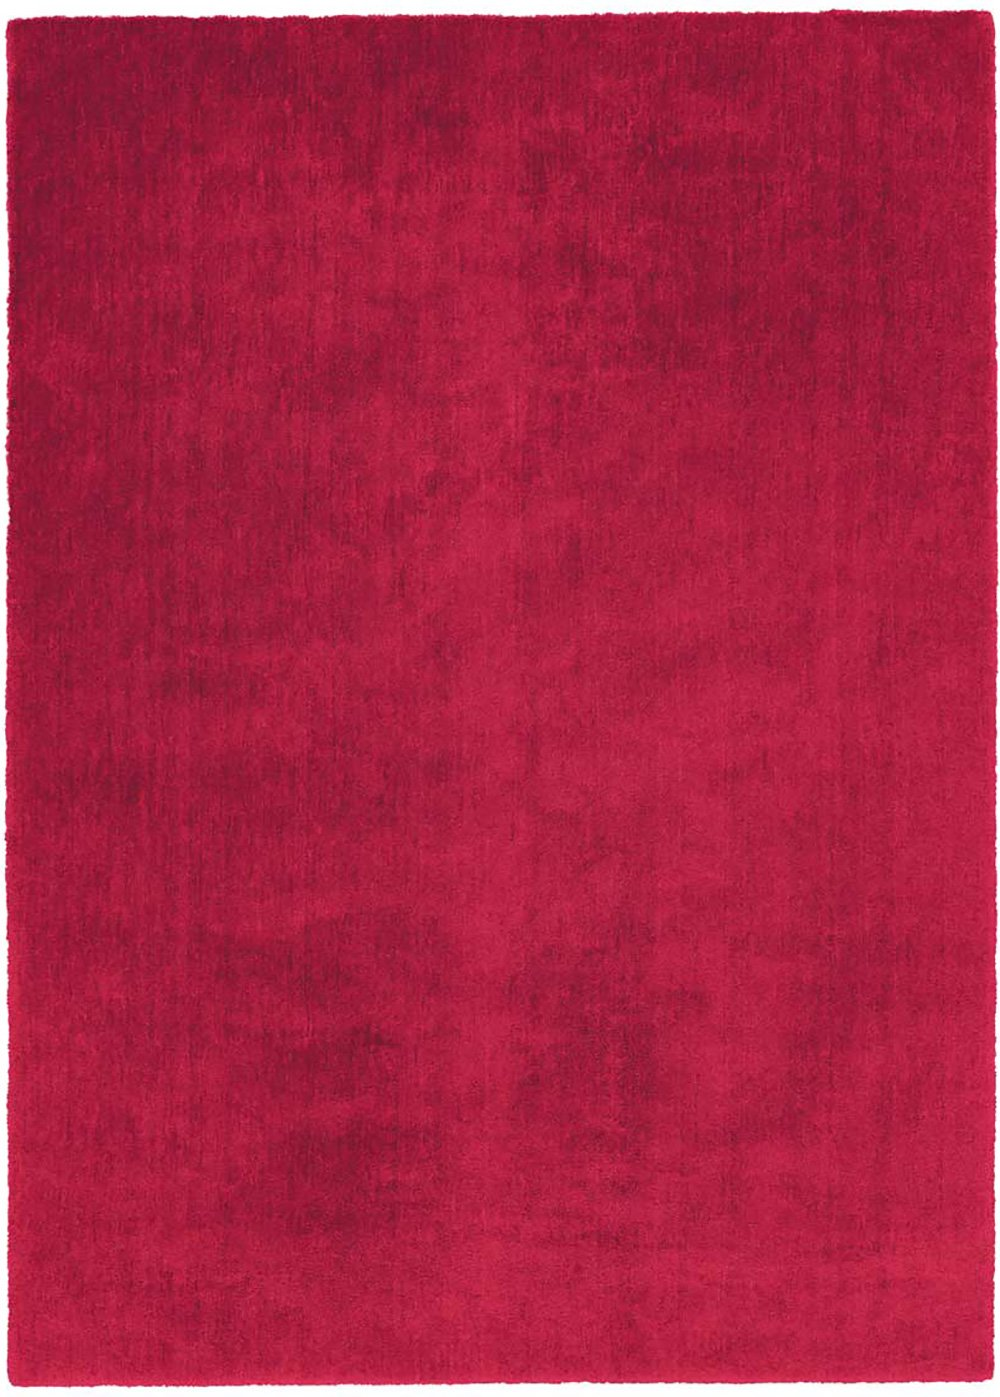 Teppich Victoria in Rot Rug Size: 170 x 240cm